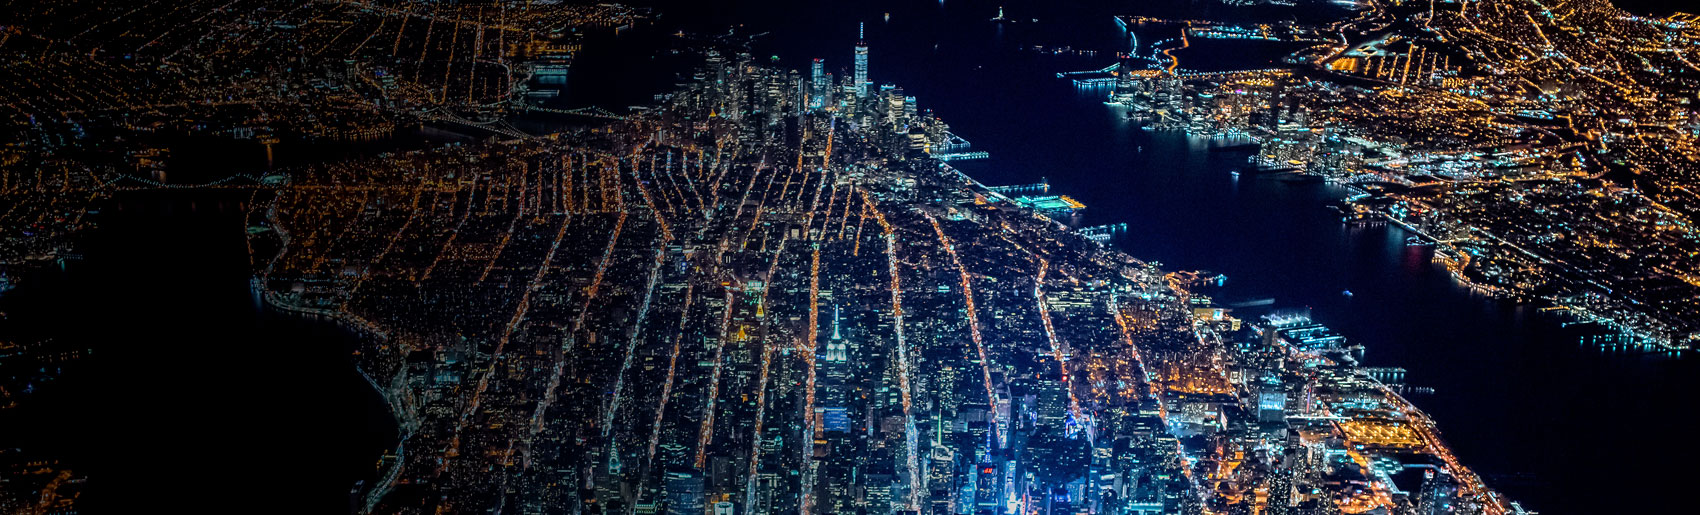 An aerial view of the Manhattan city grid and Jersey shoreline, during the evening.